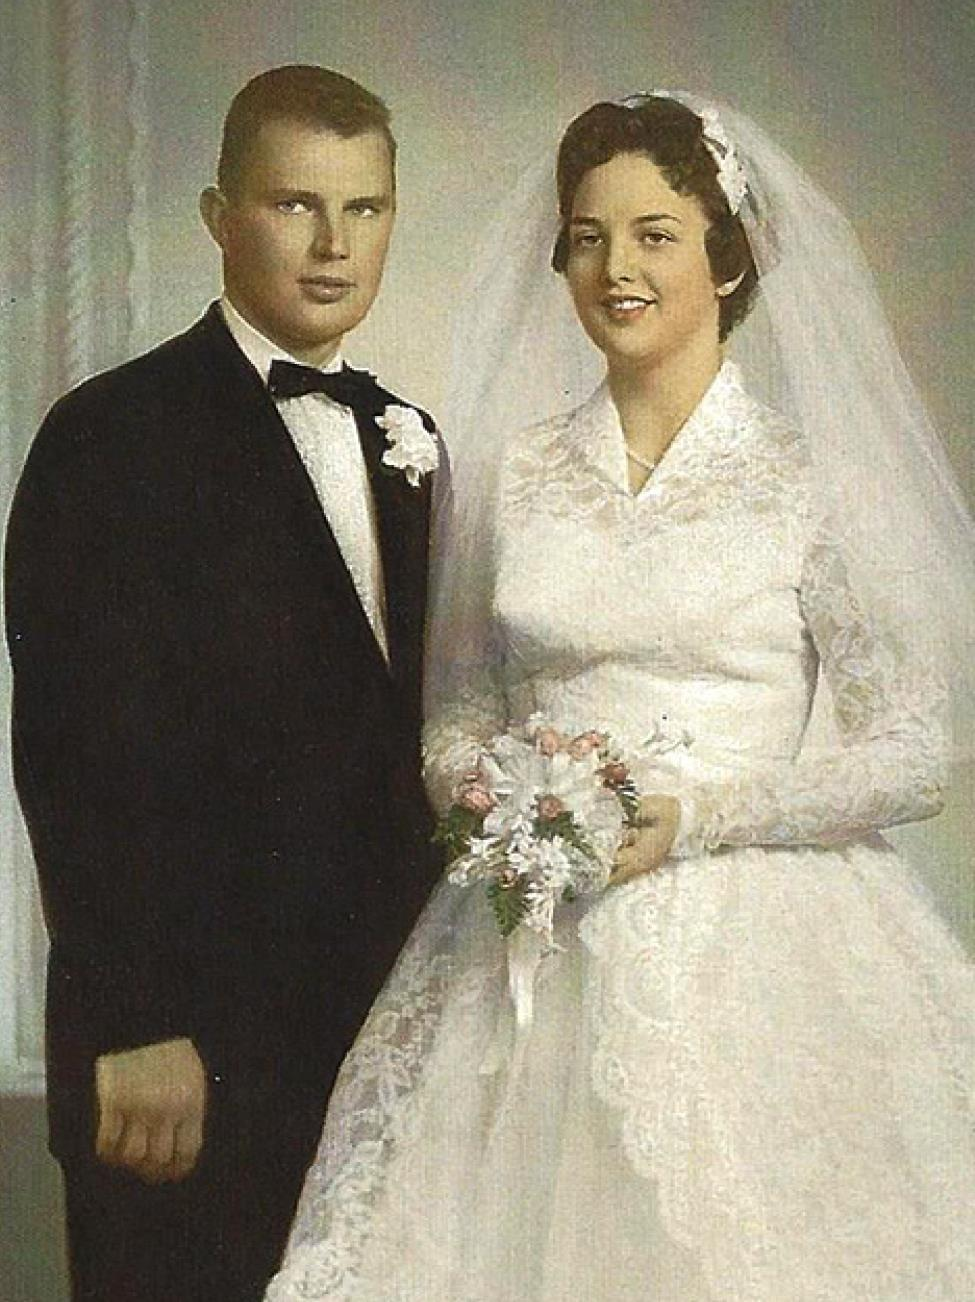 Mr. and Mrs. Vernon Schuster